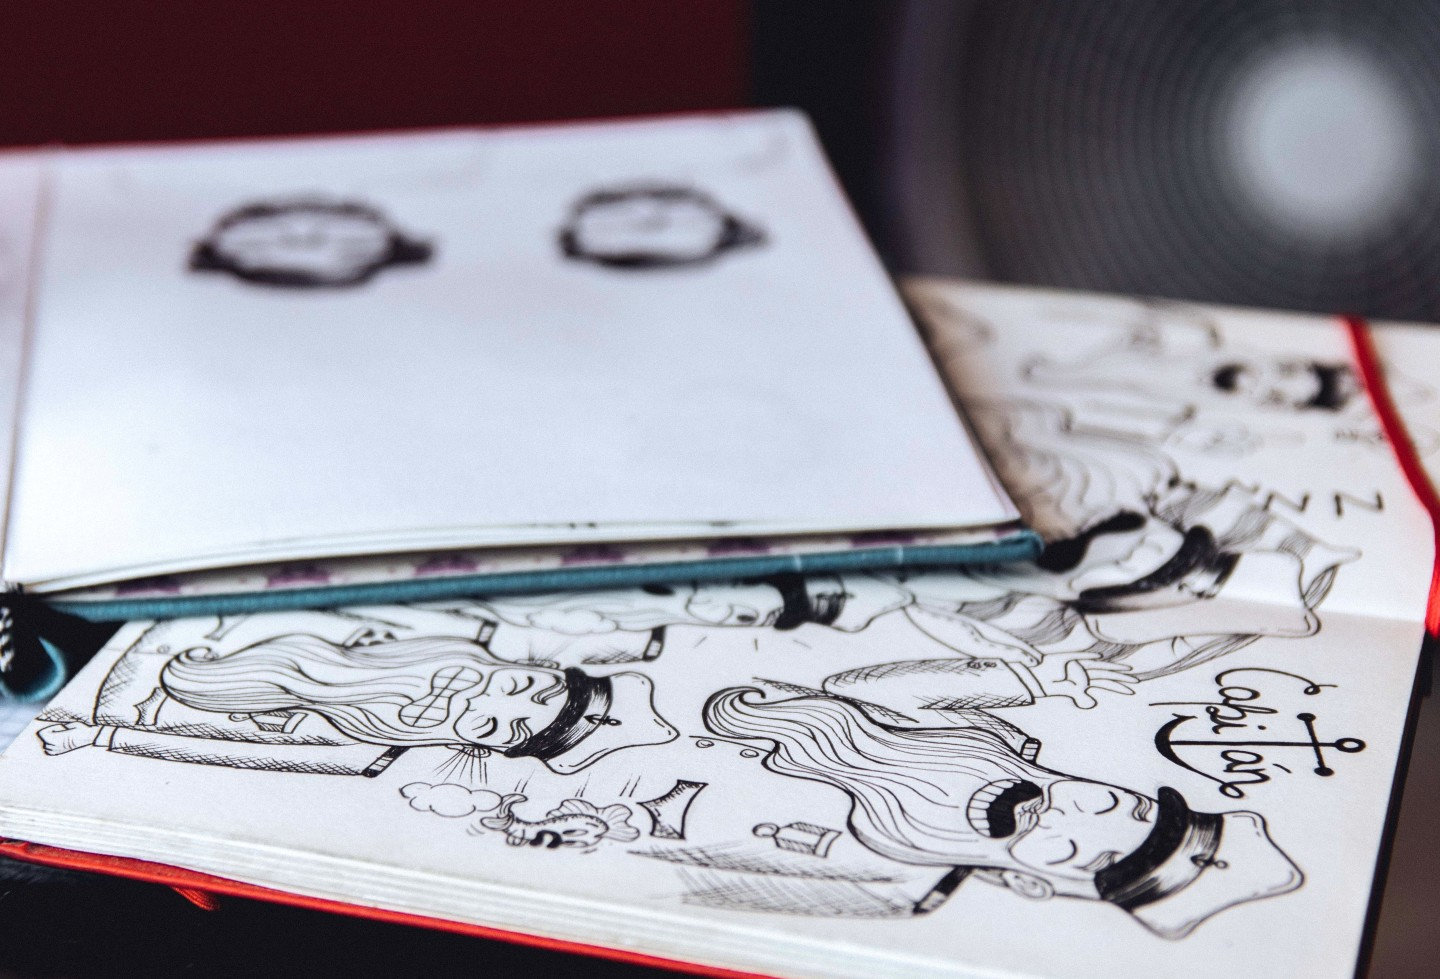 doodles-in-notebooks